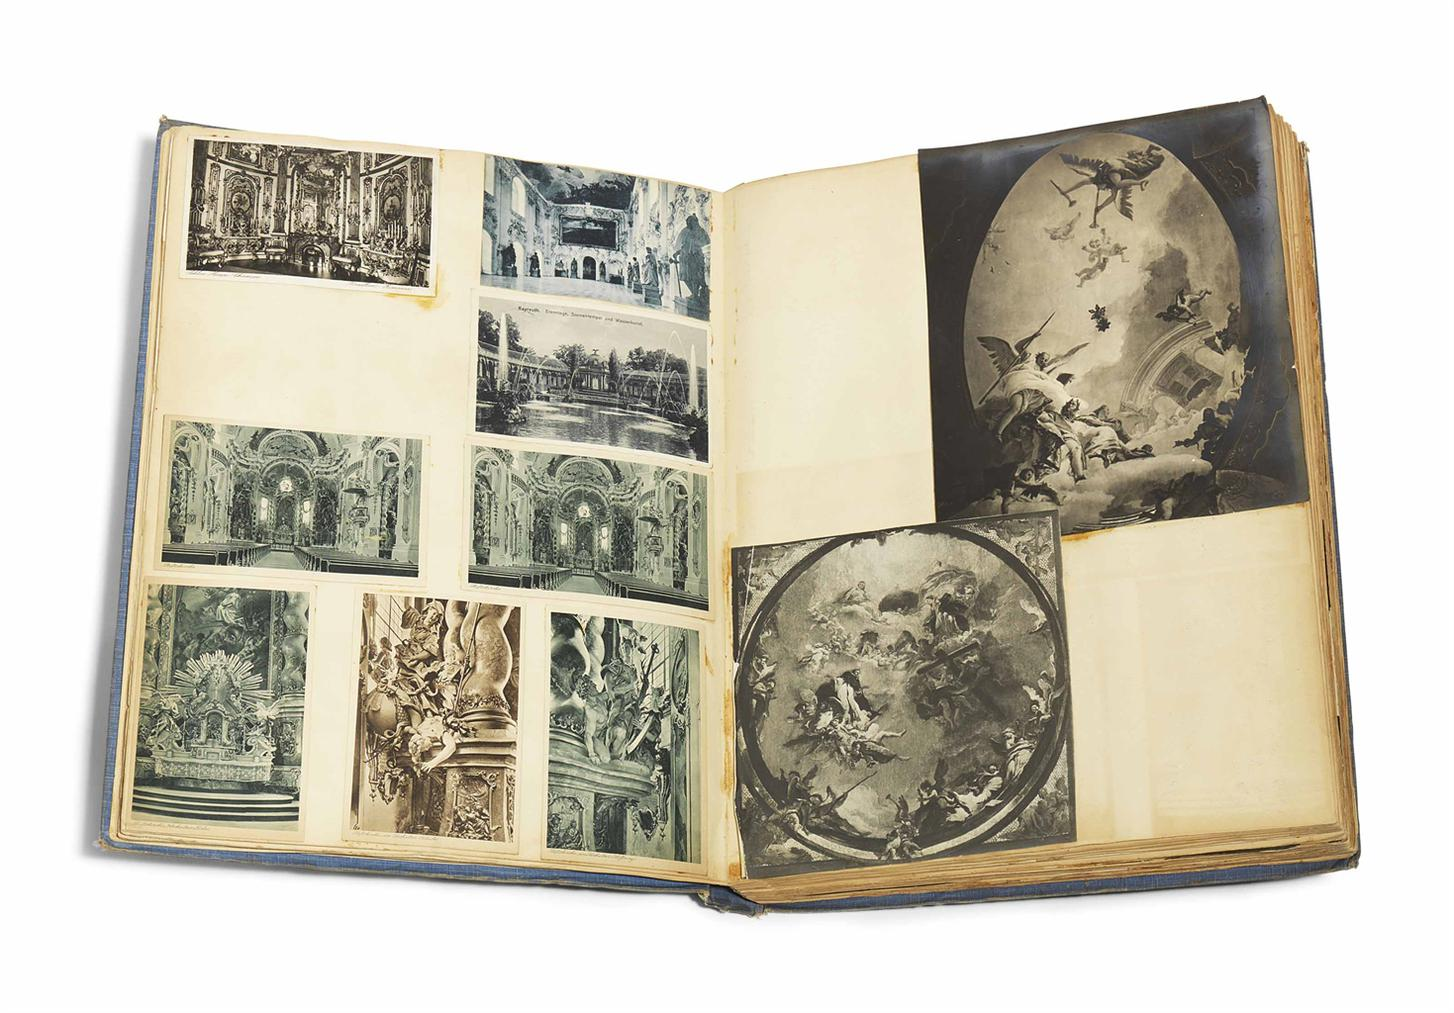 Cecil Beaton-A Scrapbook, Compiled By Beaton And Including An Extensive Series Of Studies By Hoyningen-Huene-1930